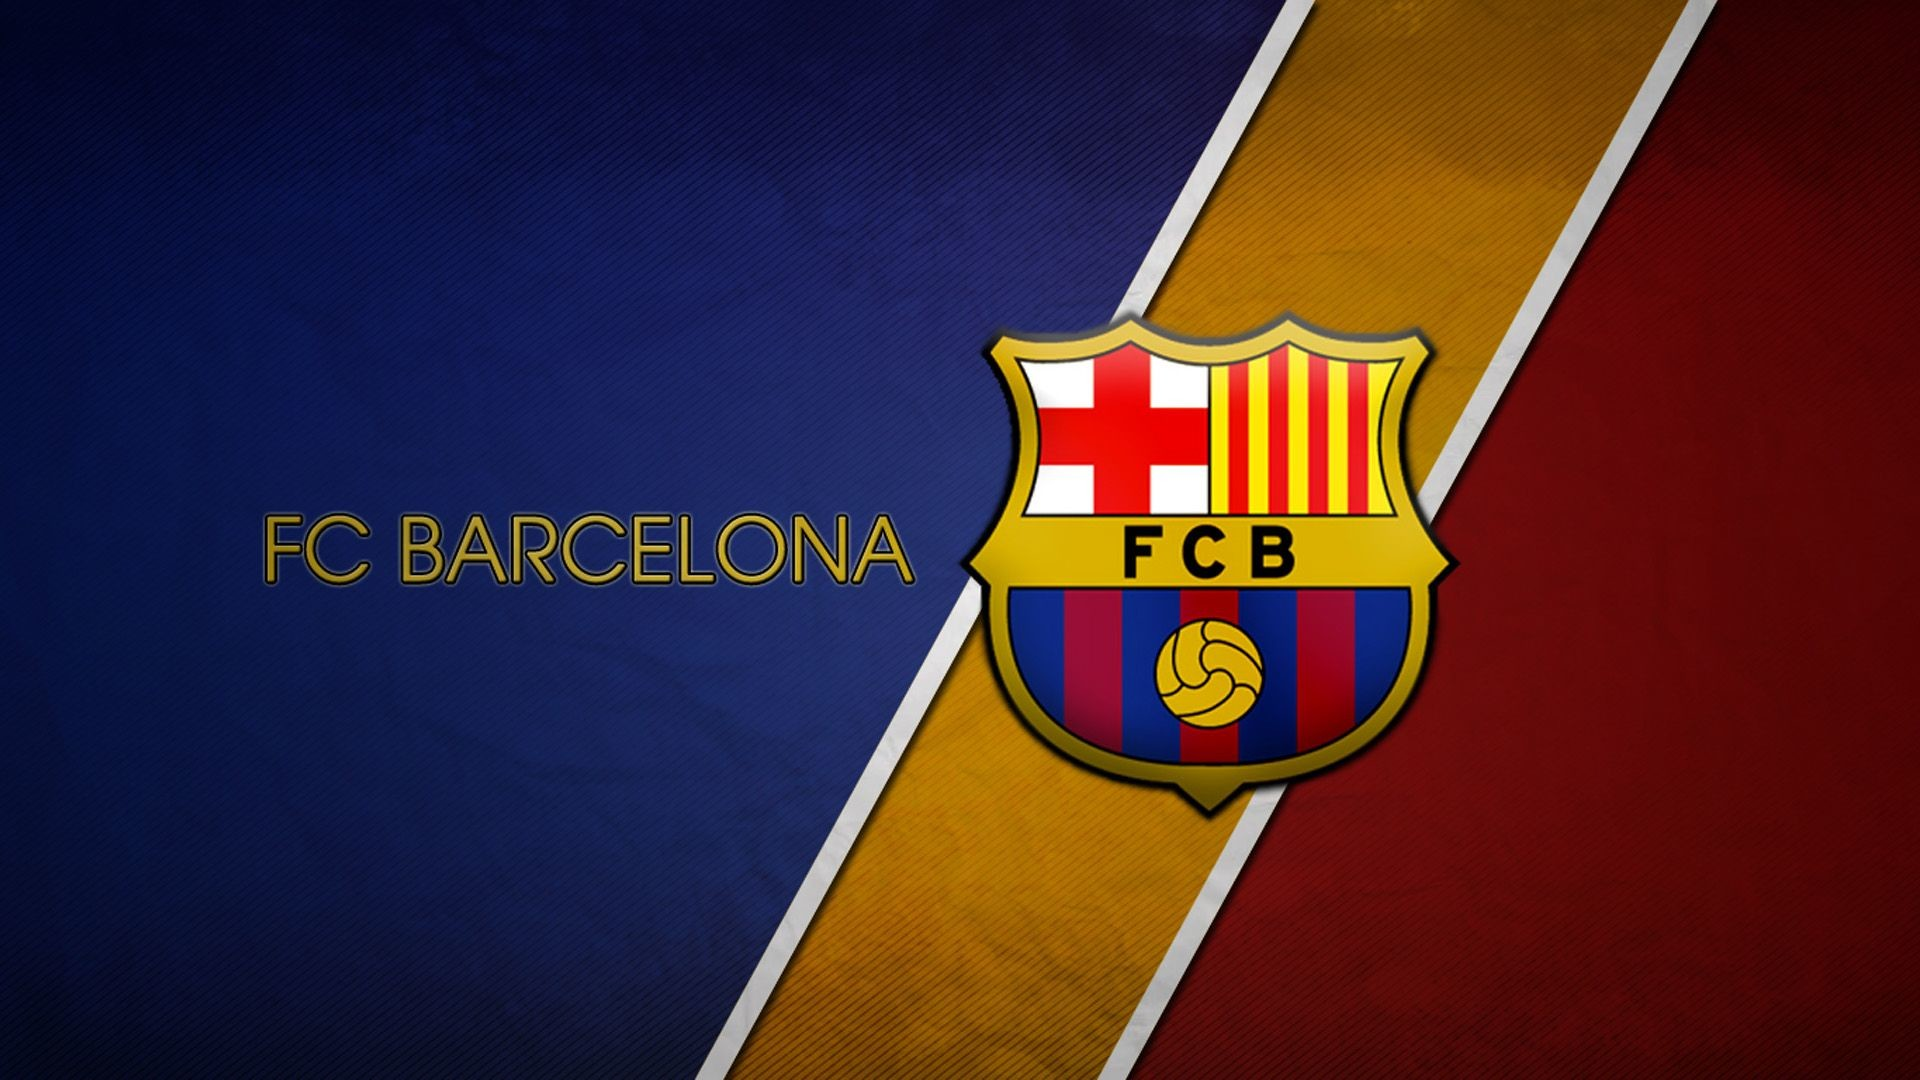 Res: 1920x1080, Fc Barcelona Images